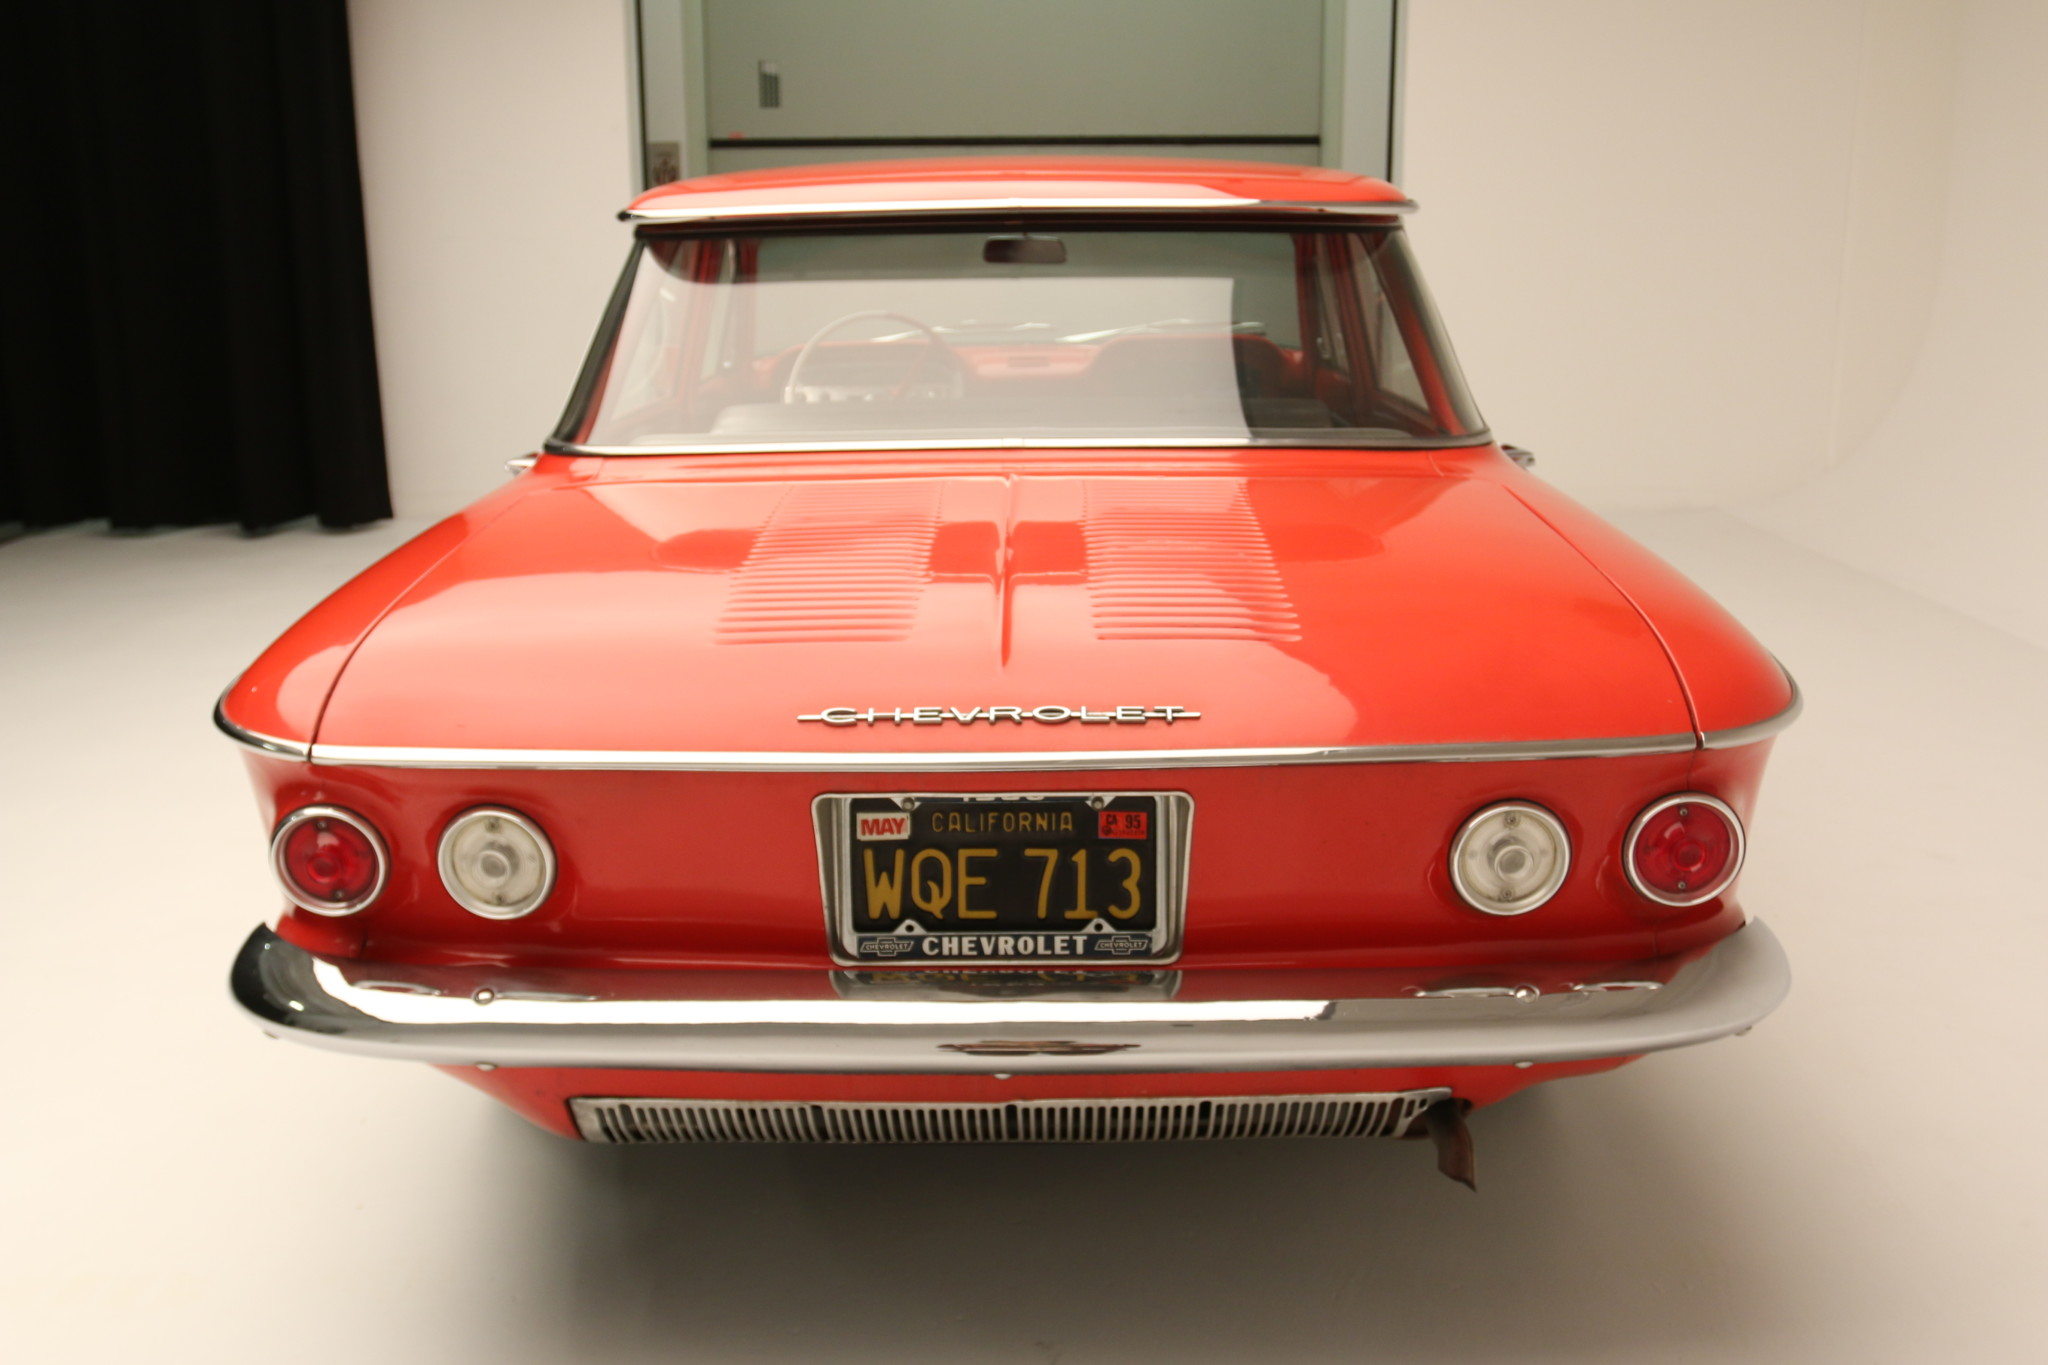 1960 Chevrolet Corvair 700 rear